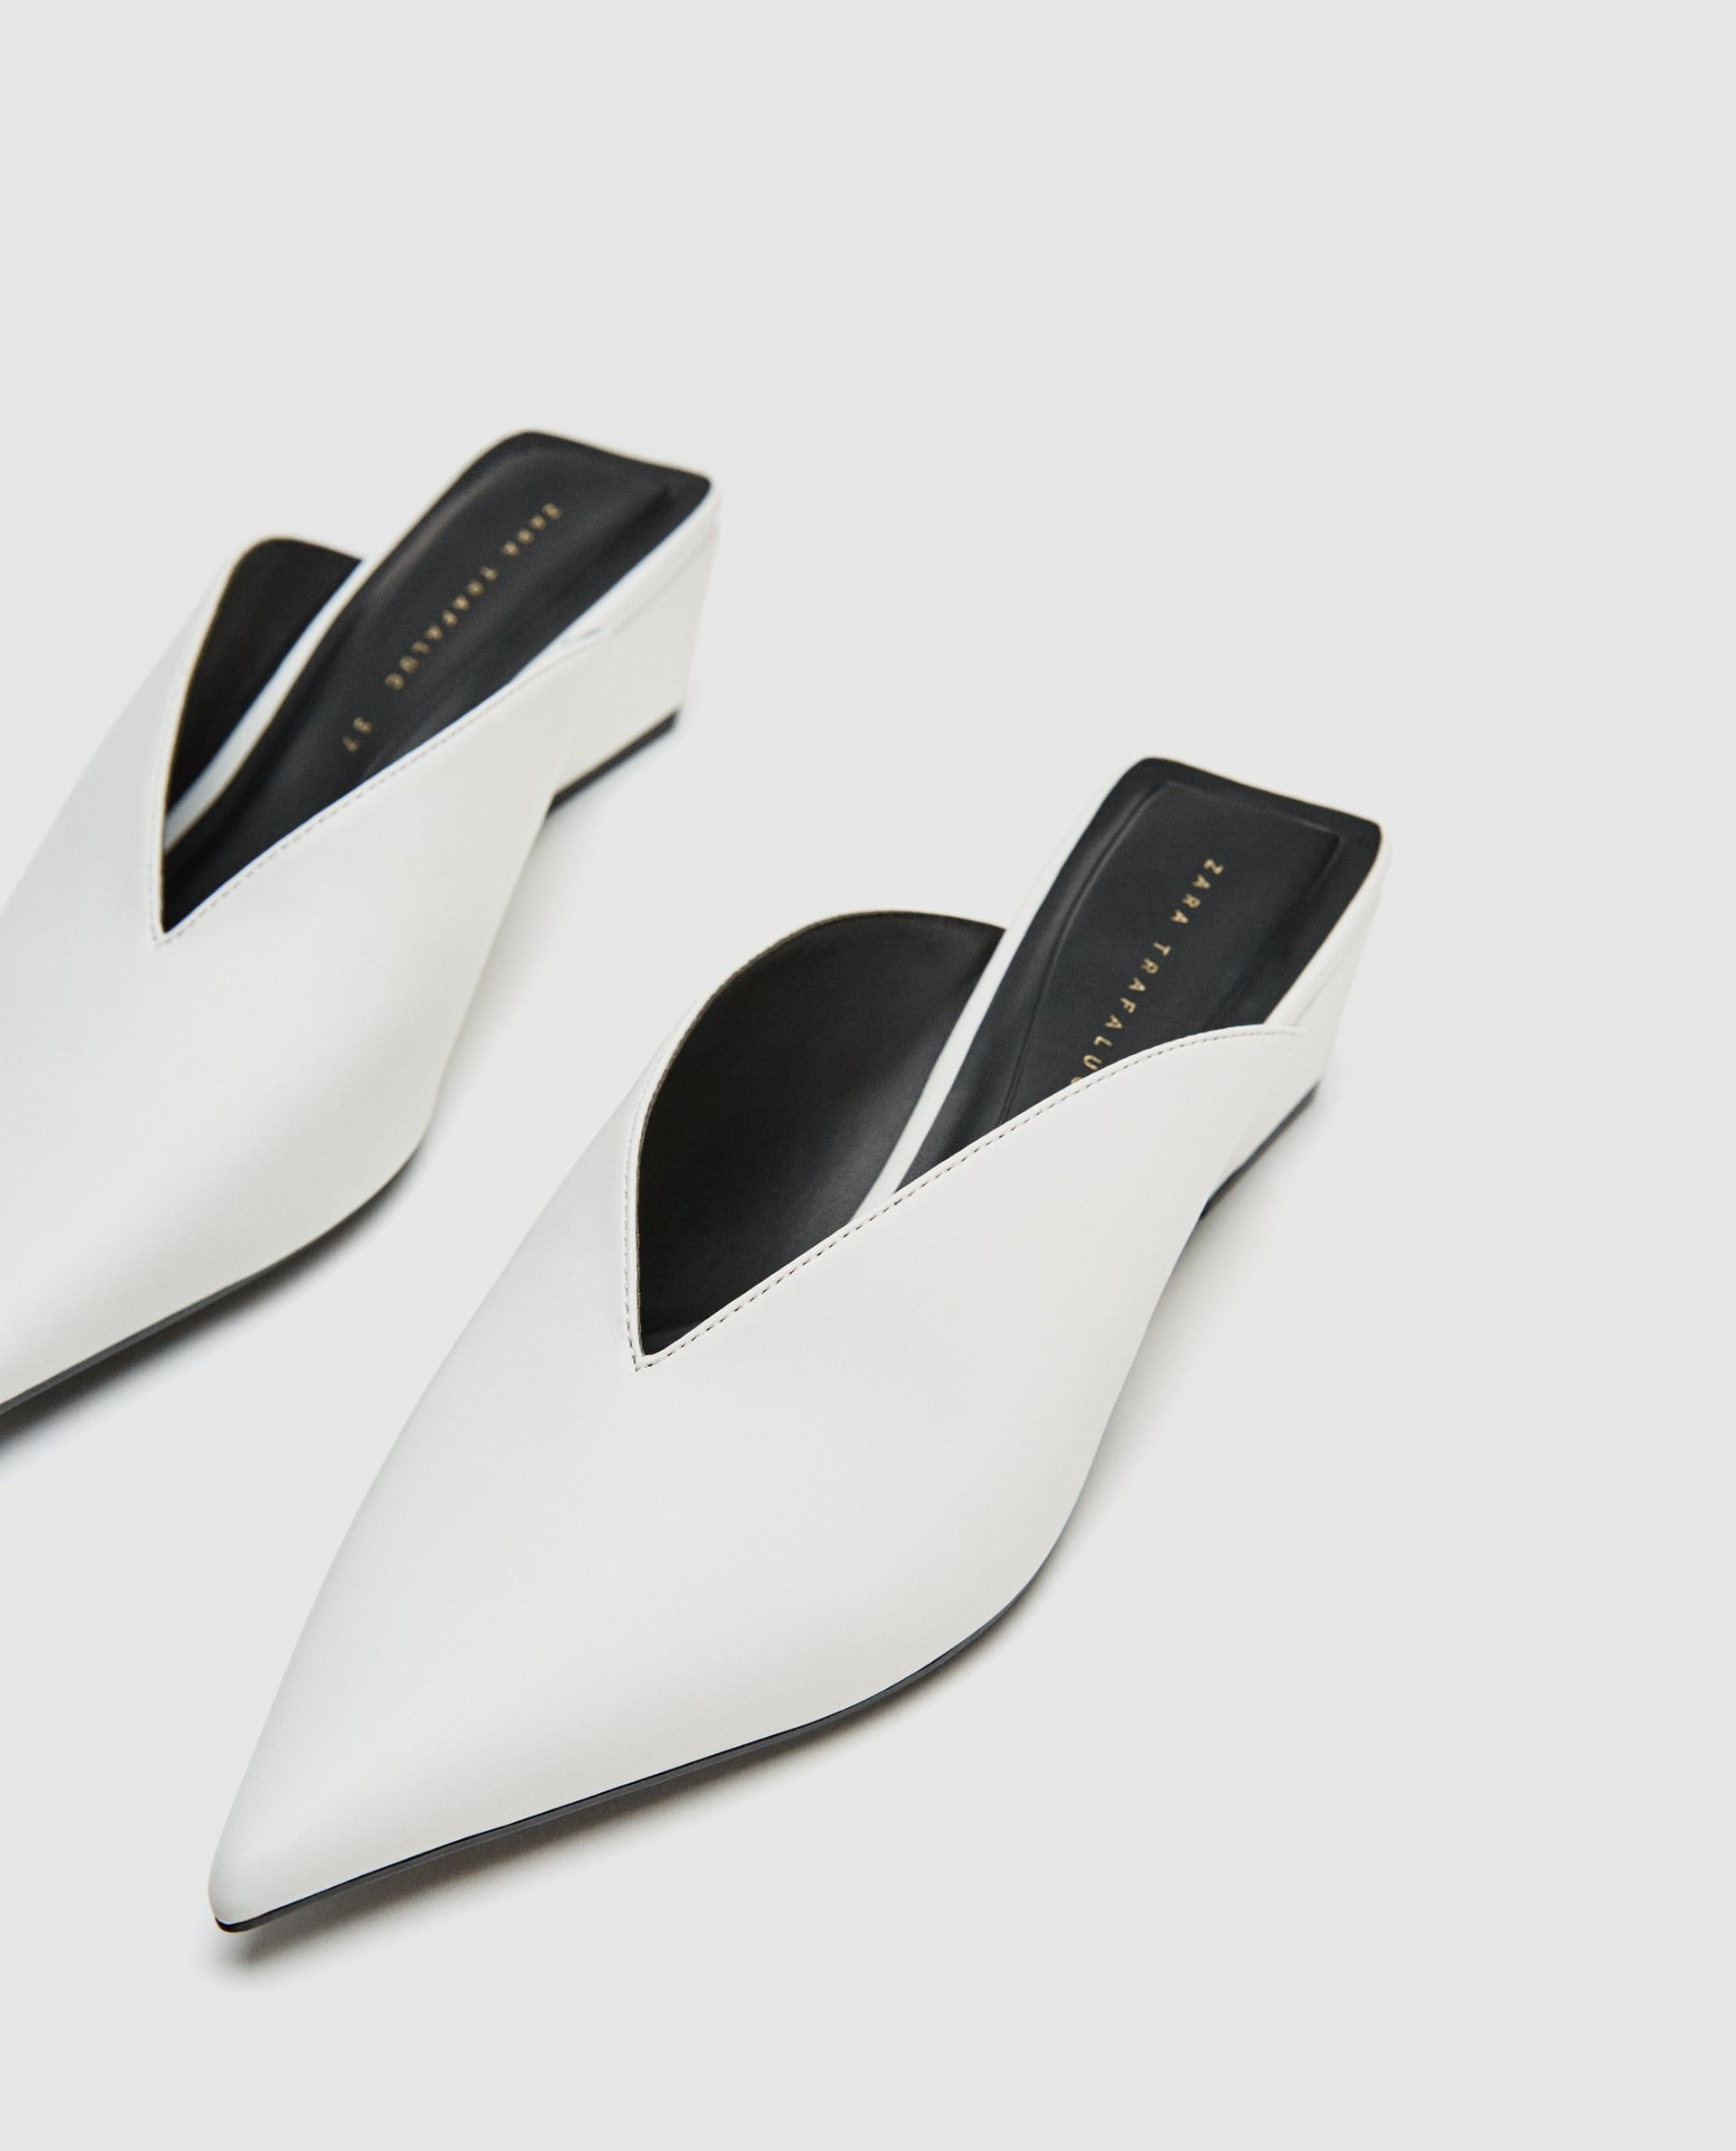 White Wedge Mules At Zara I Wanna Shoes Wedge Mules Shoe Boots